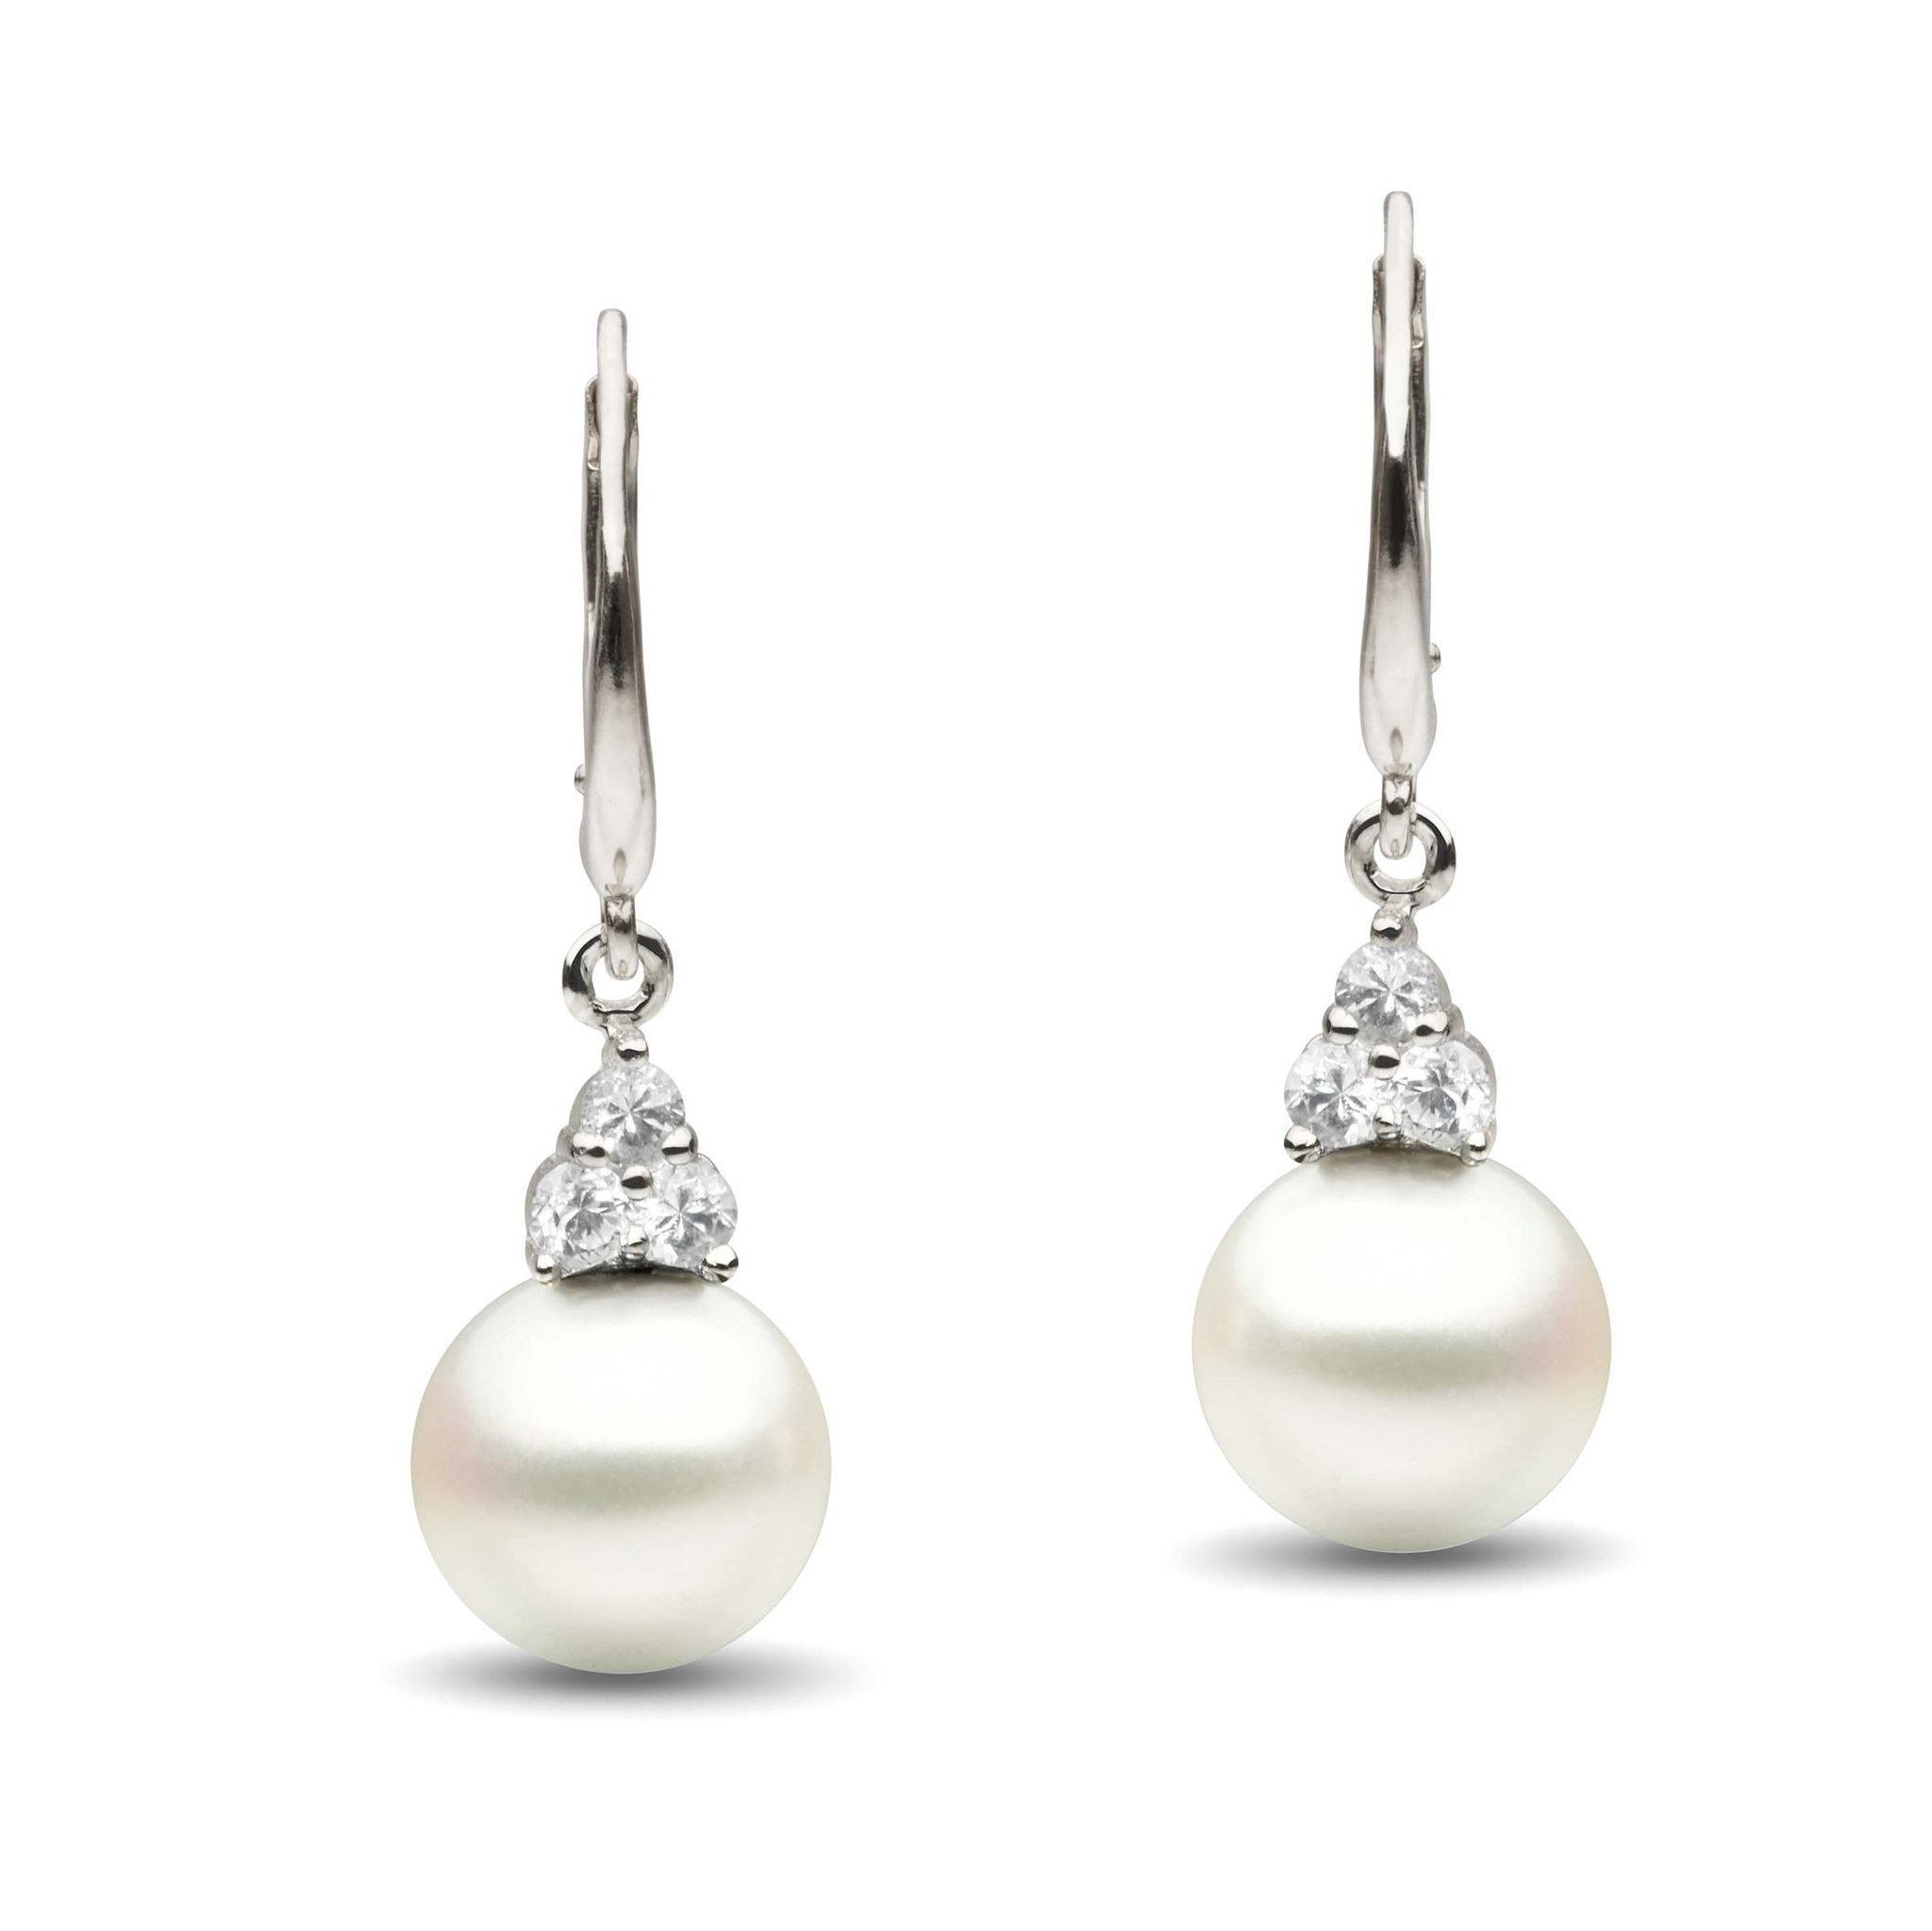 Always Collection White South Sea 9.0-10.0 mm Pearl and Diamond Earrings